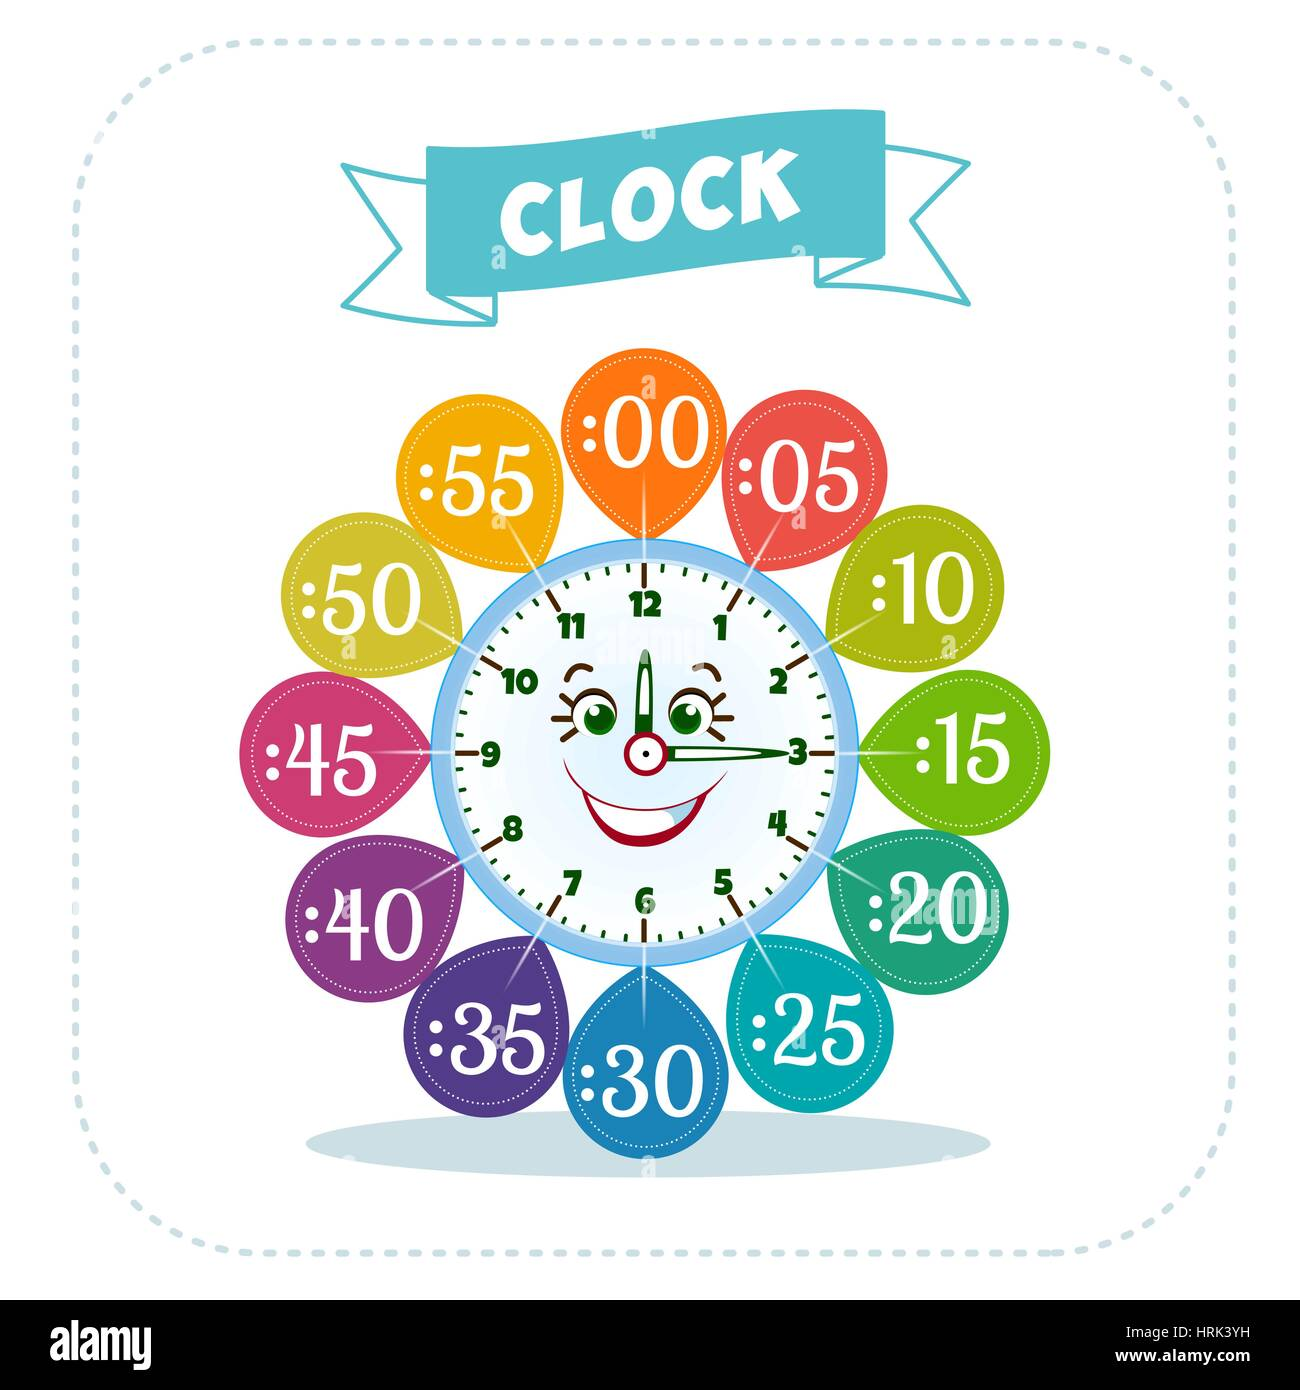 Telling Time Worksheet For School Kids To Identify The Time Game For Stock Vector Art